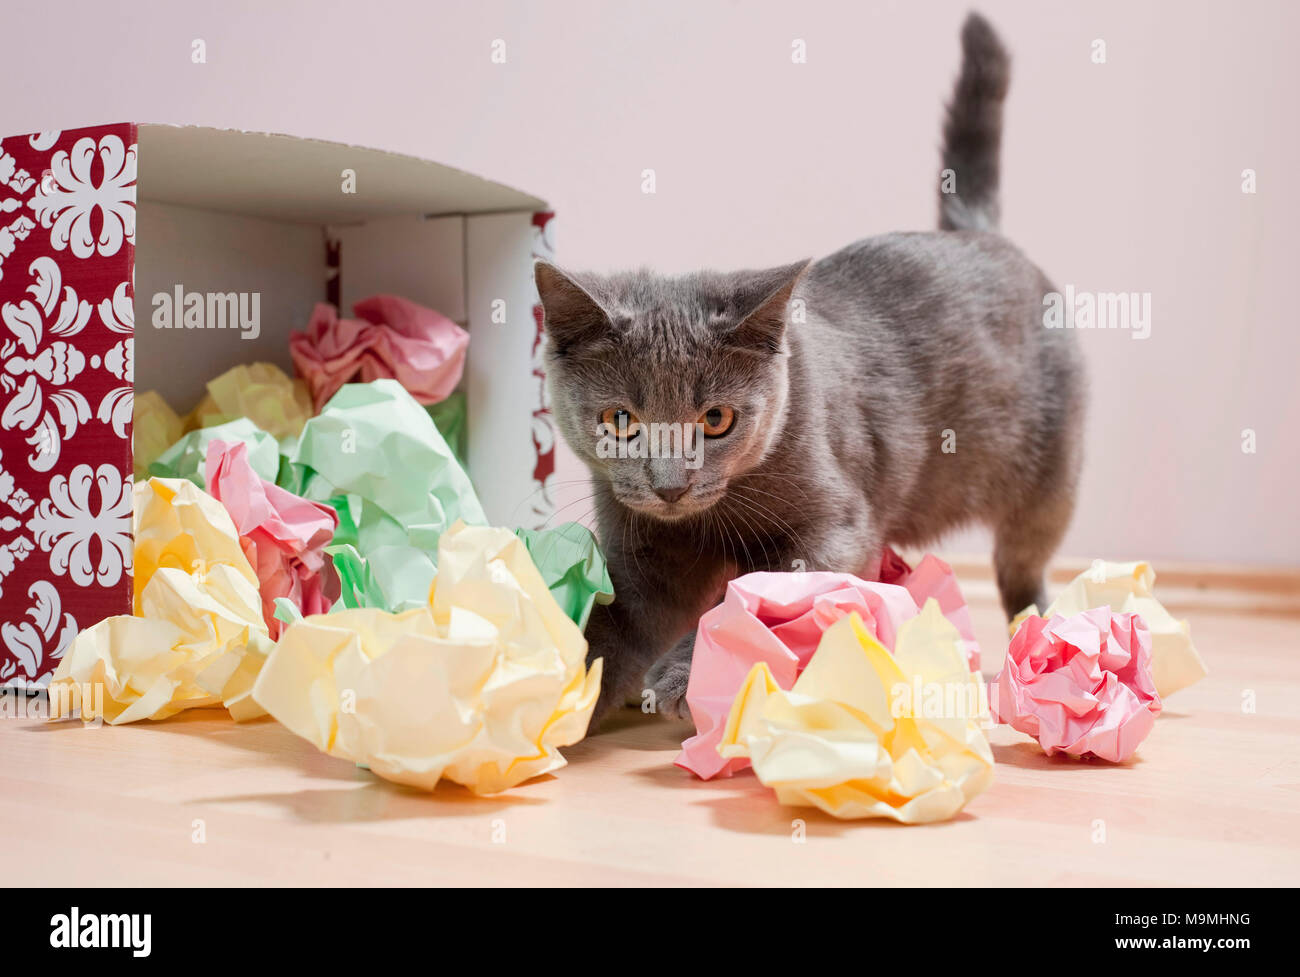 Chartreux cat. Kitten playing with a box filled with paper, fine toy for cats. Germany - Stock Image